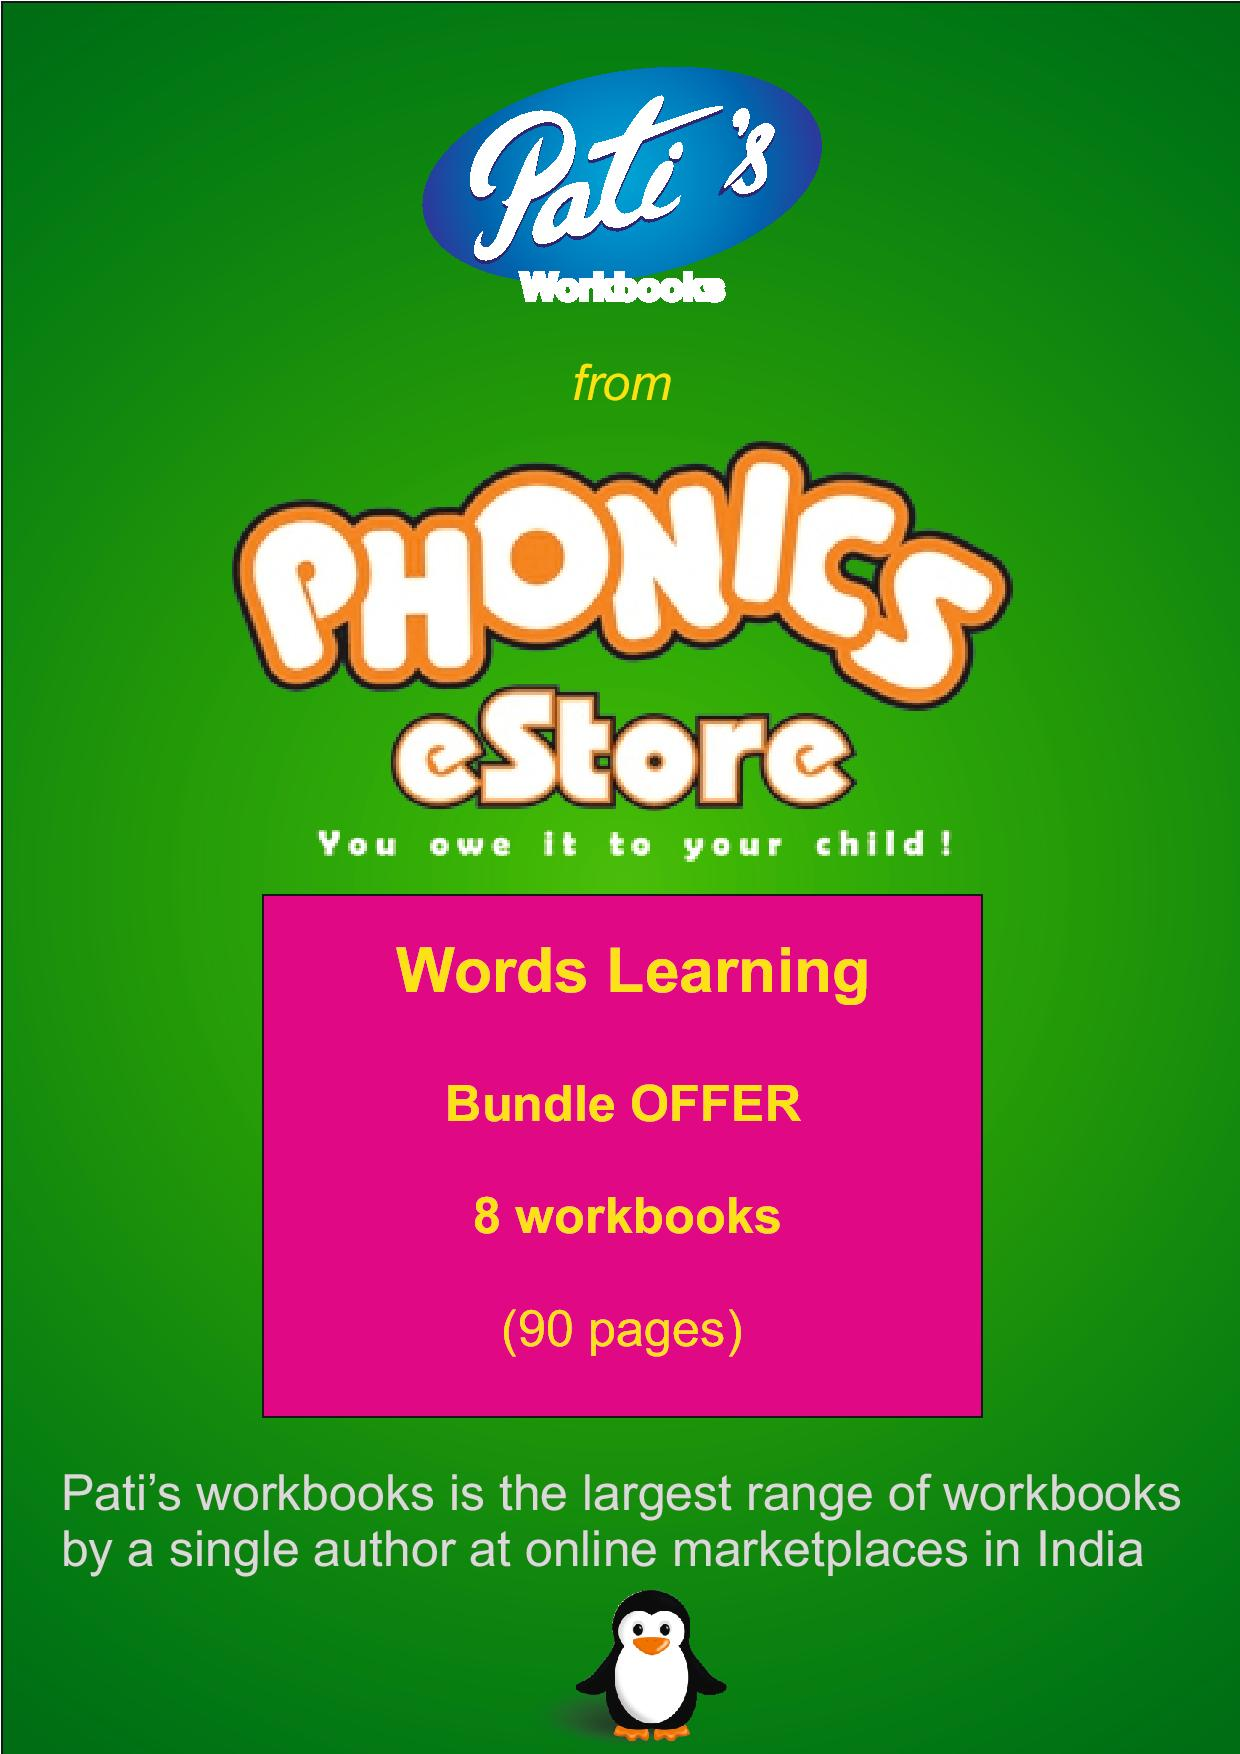 phonics classes in malad jogeshwari dindoshi